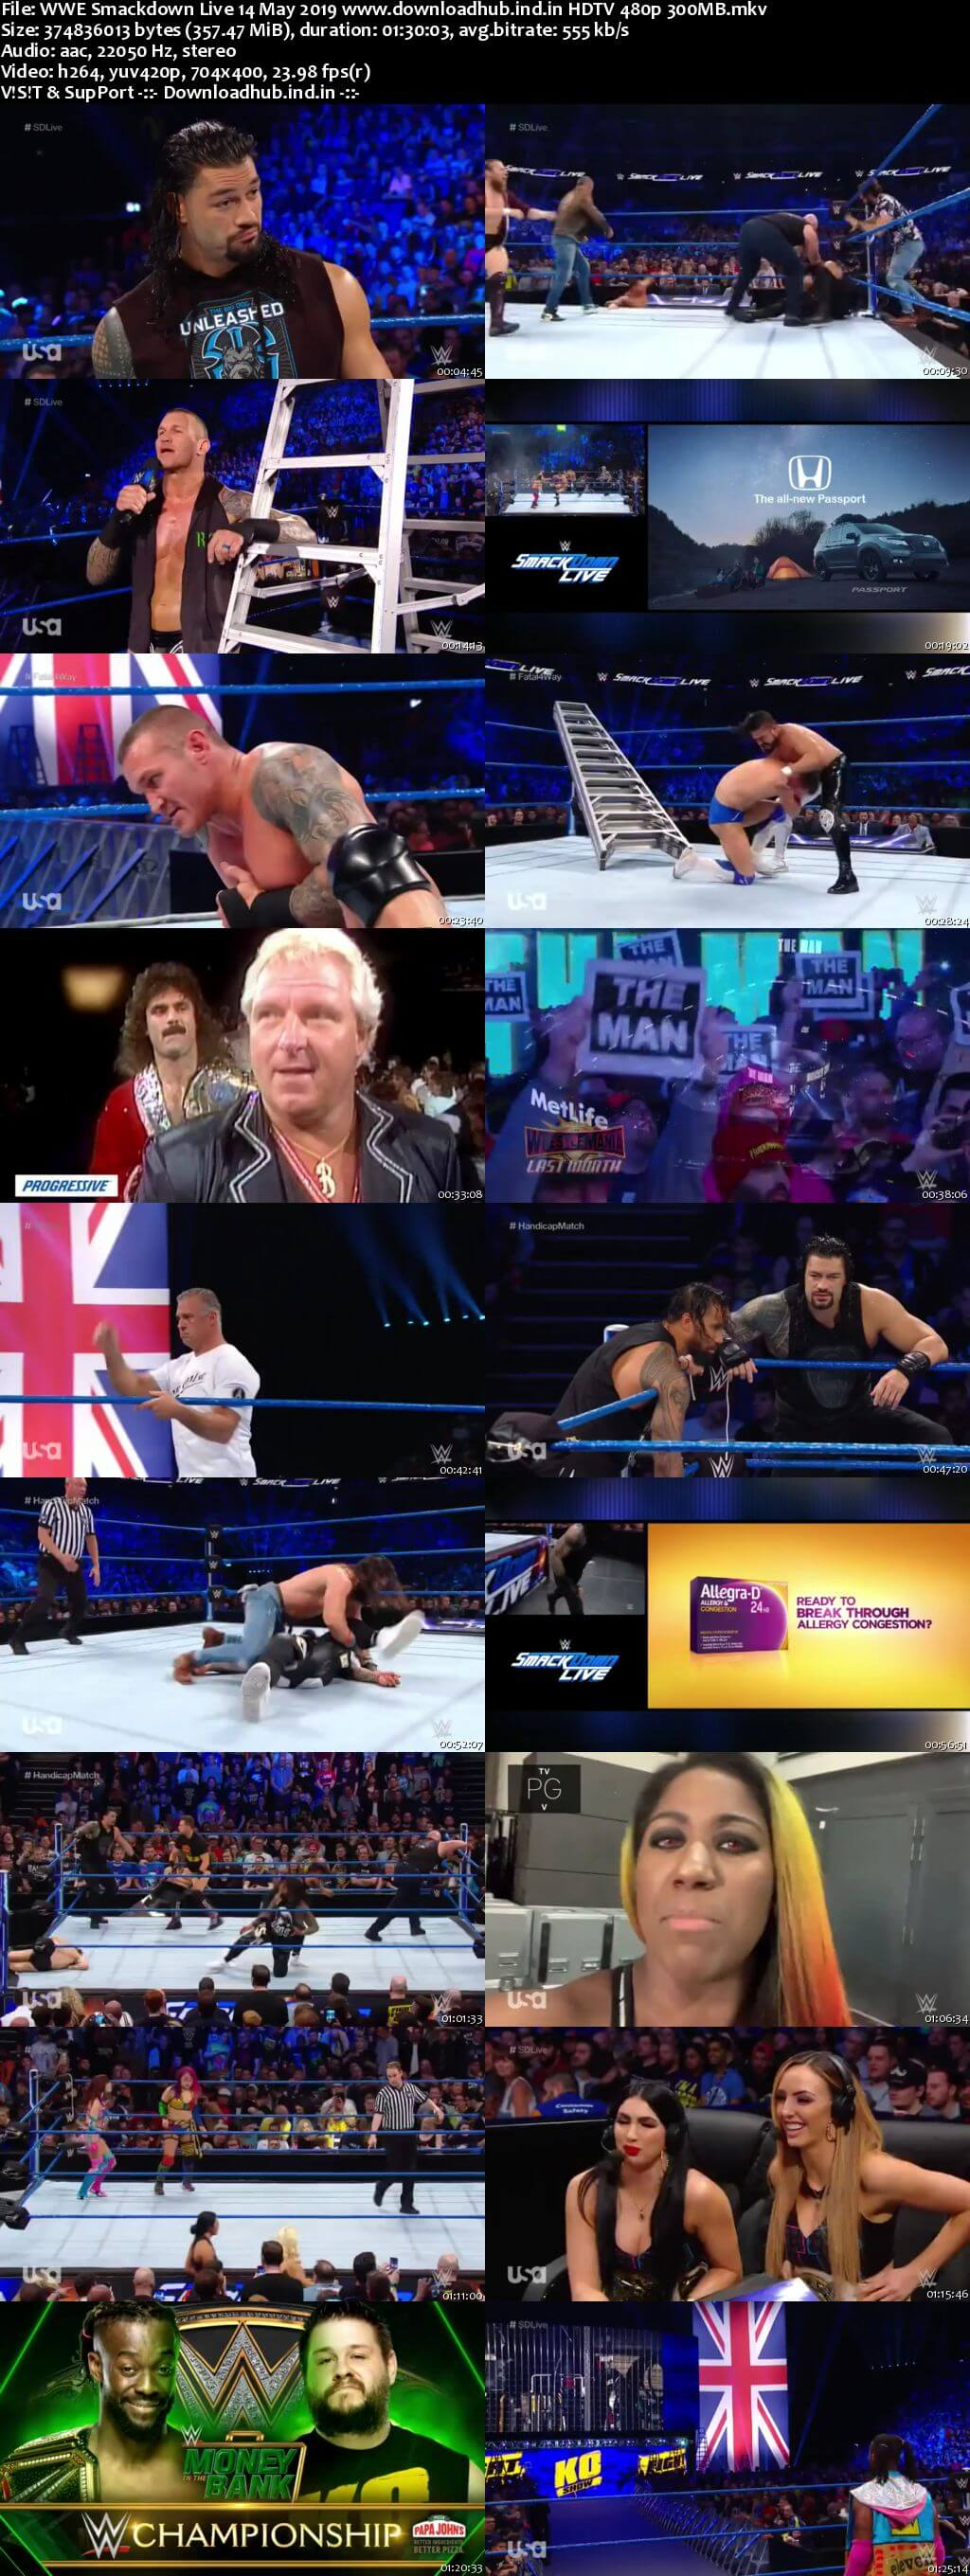 WWE Smackdown Live 14th May 2019 300MB HDTV 480p